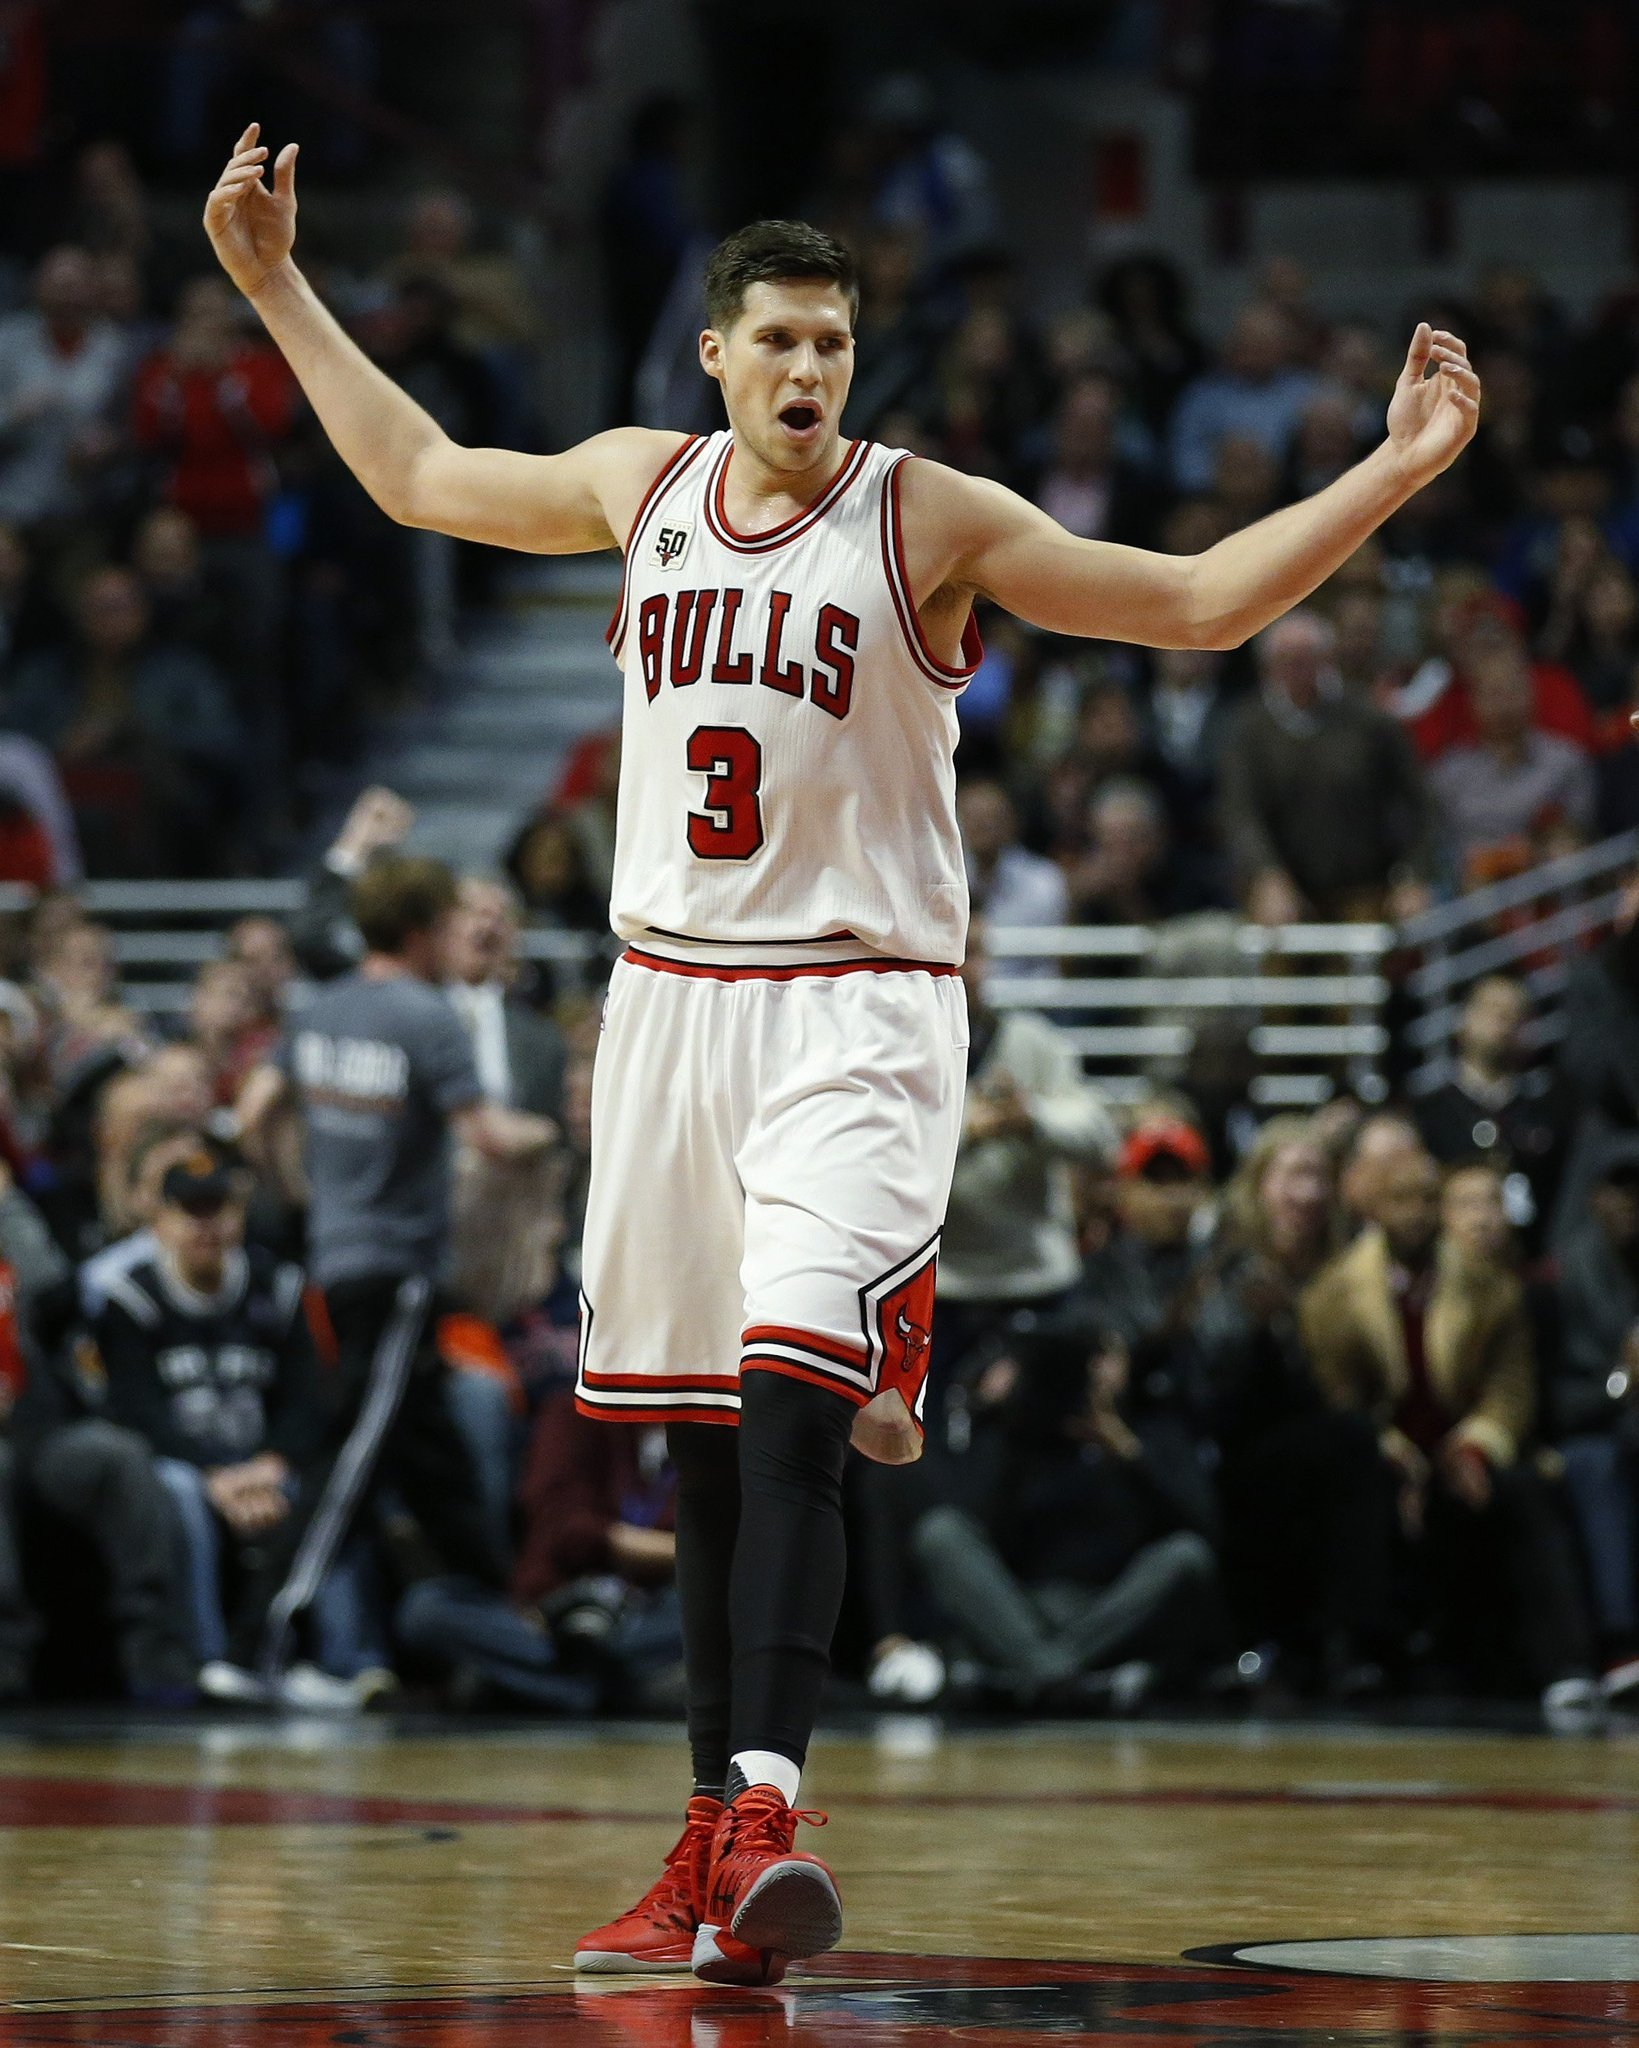 Wednesday's Recap: Bulls 99, Nuggets 90